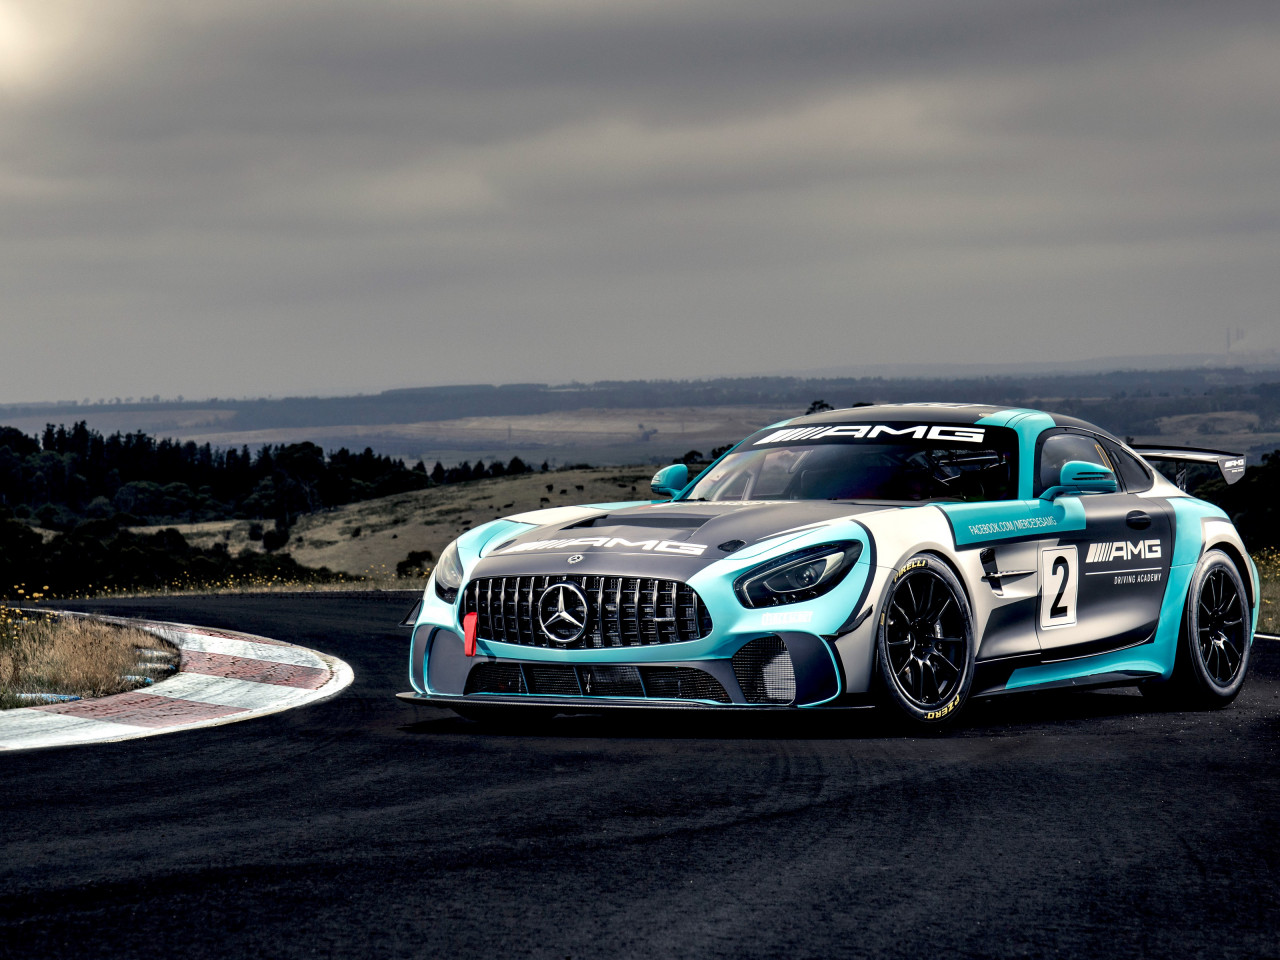 Mercedes AMG GT4 | 1280x960 wallpaper